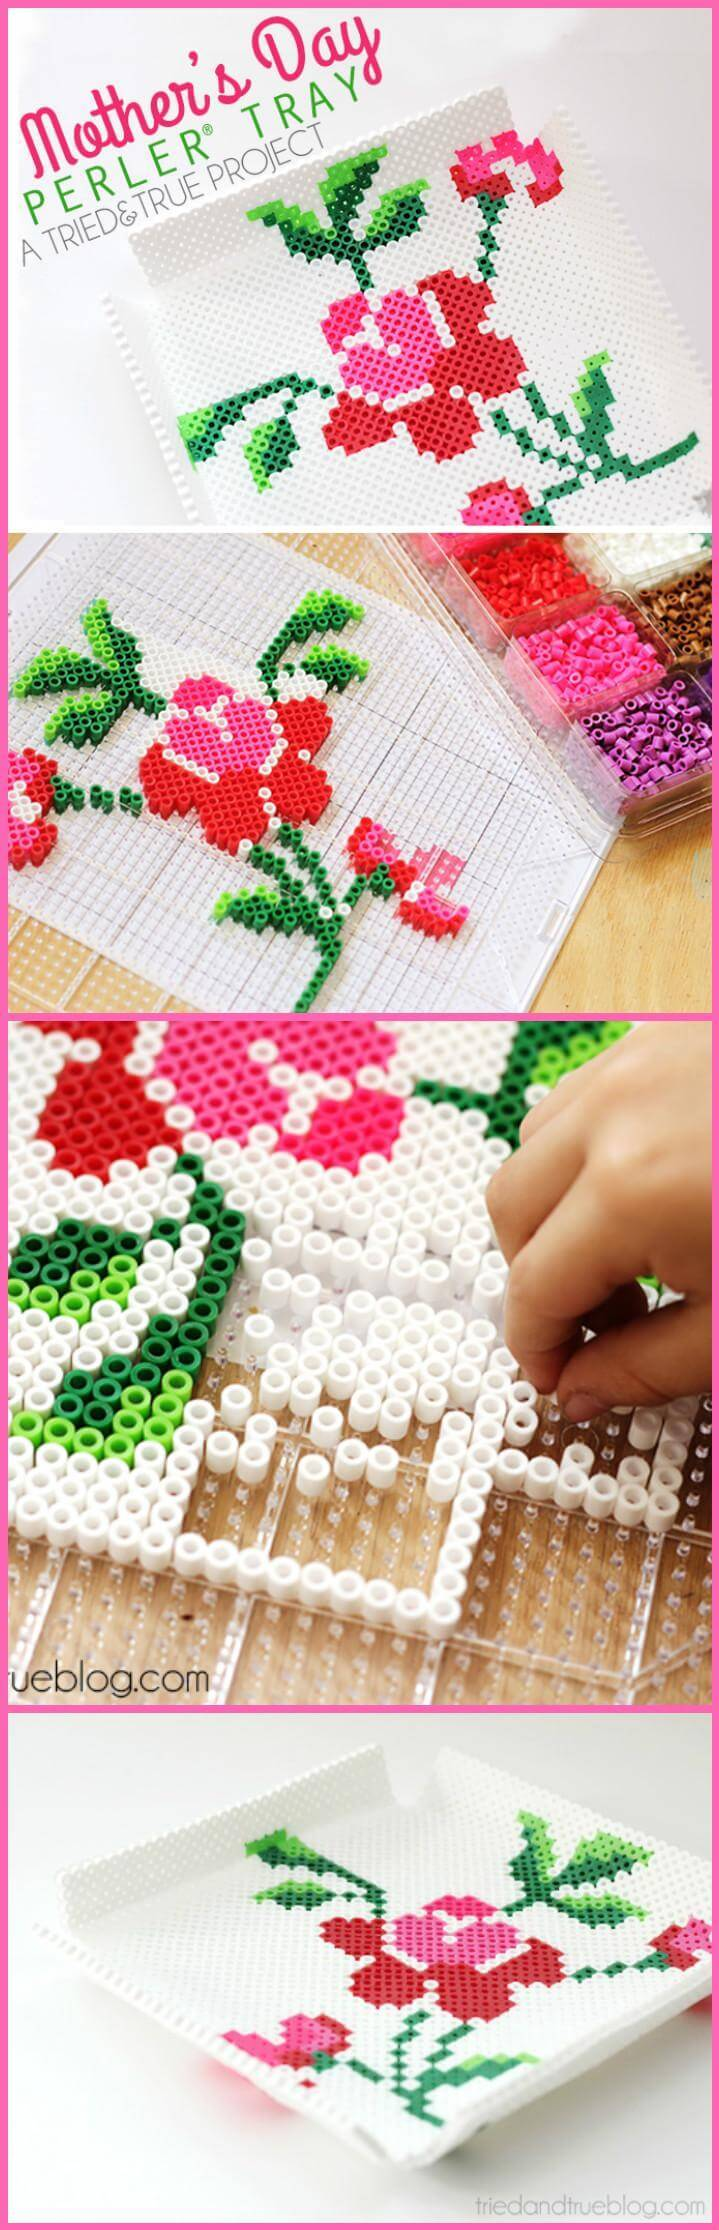 easy Mother's Day perfer bead tray